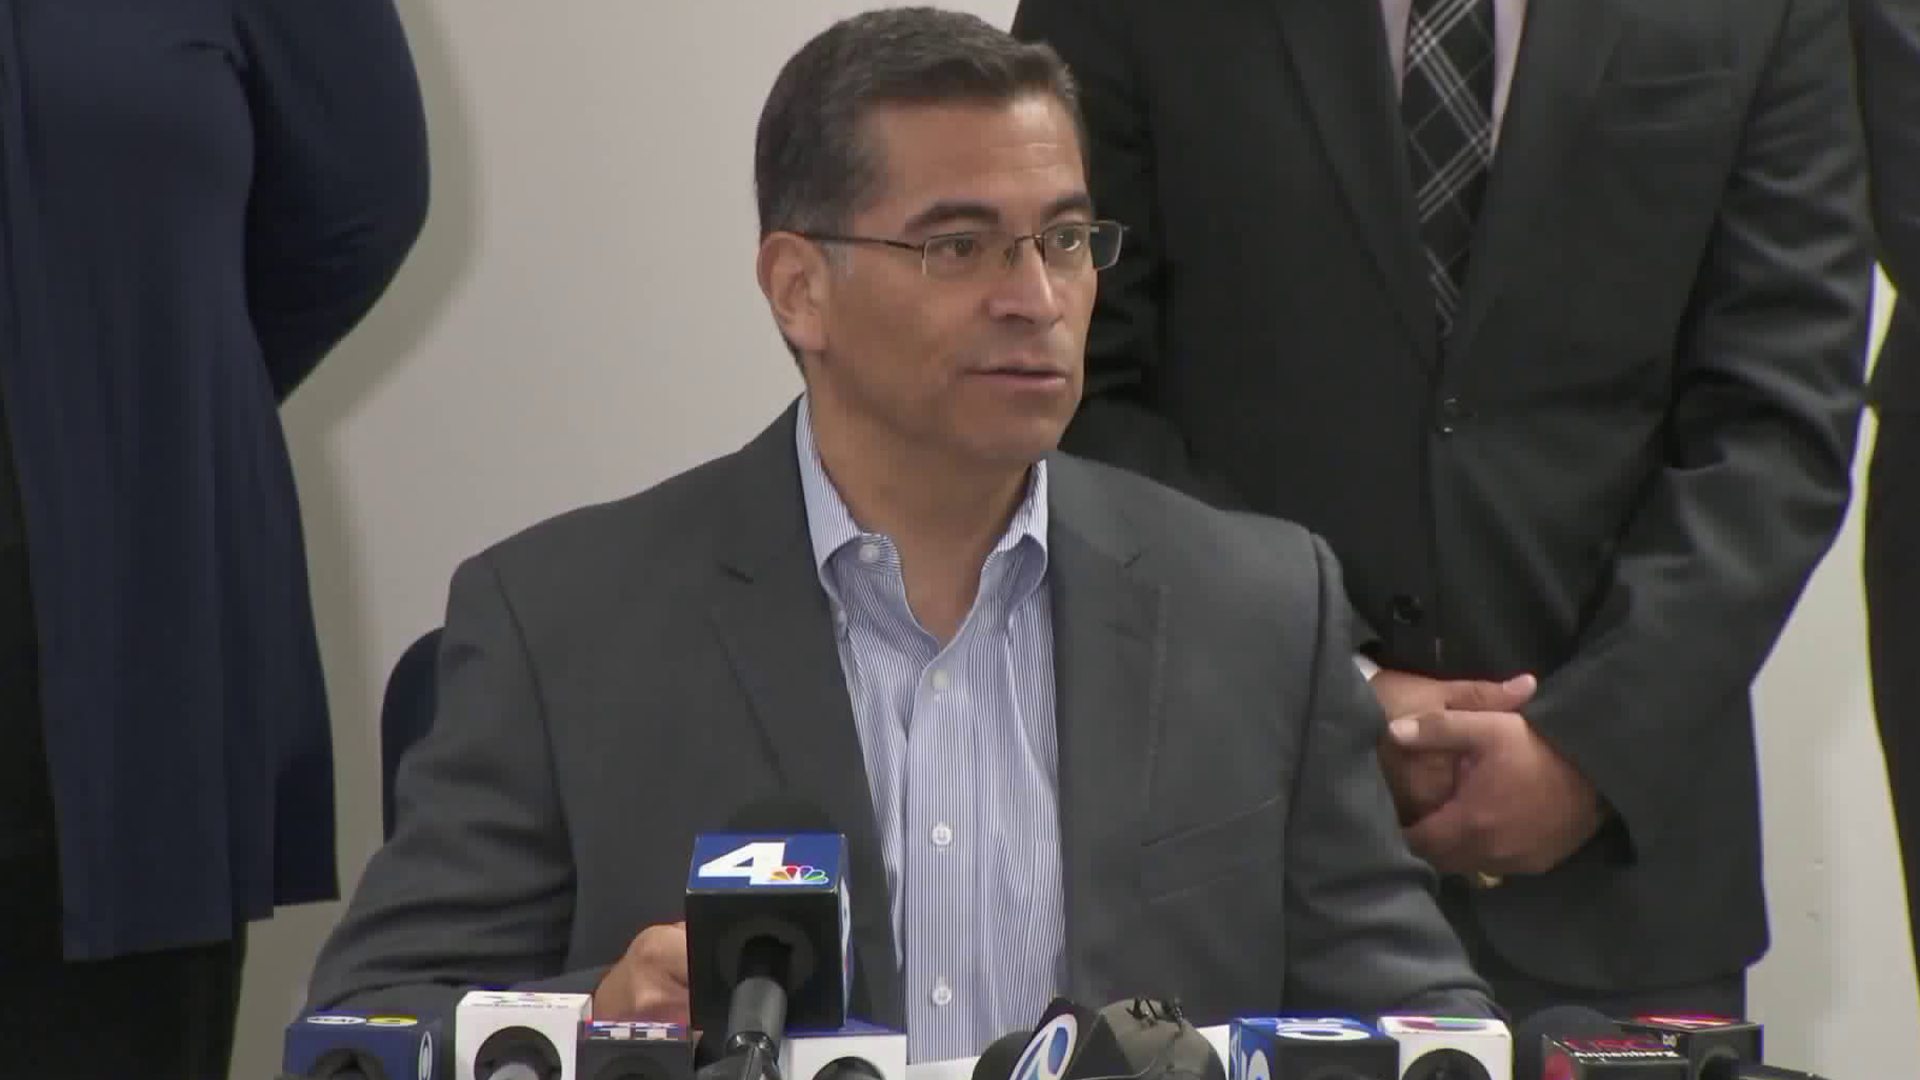 California Attorney General Xavier Becerra speaks in Los Angeles on Sept. 12, 2017. (Credit: KTLA)